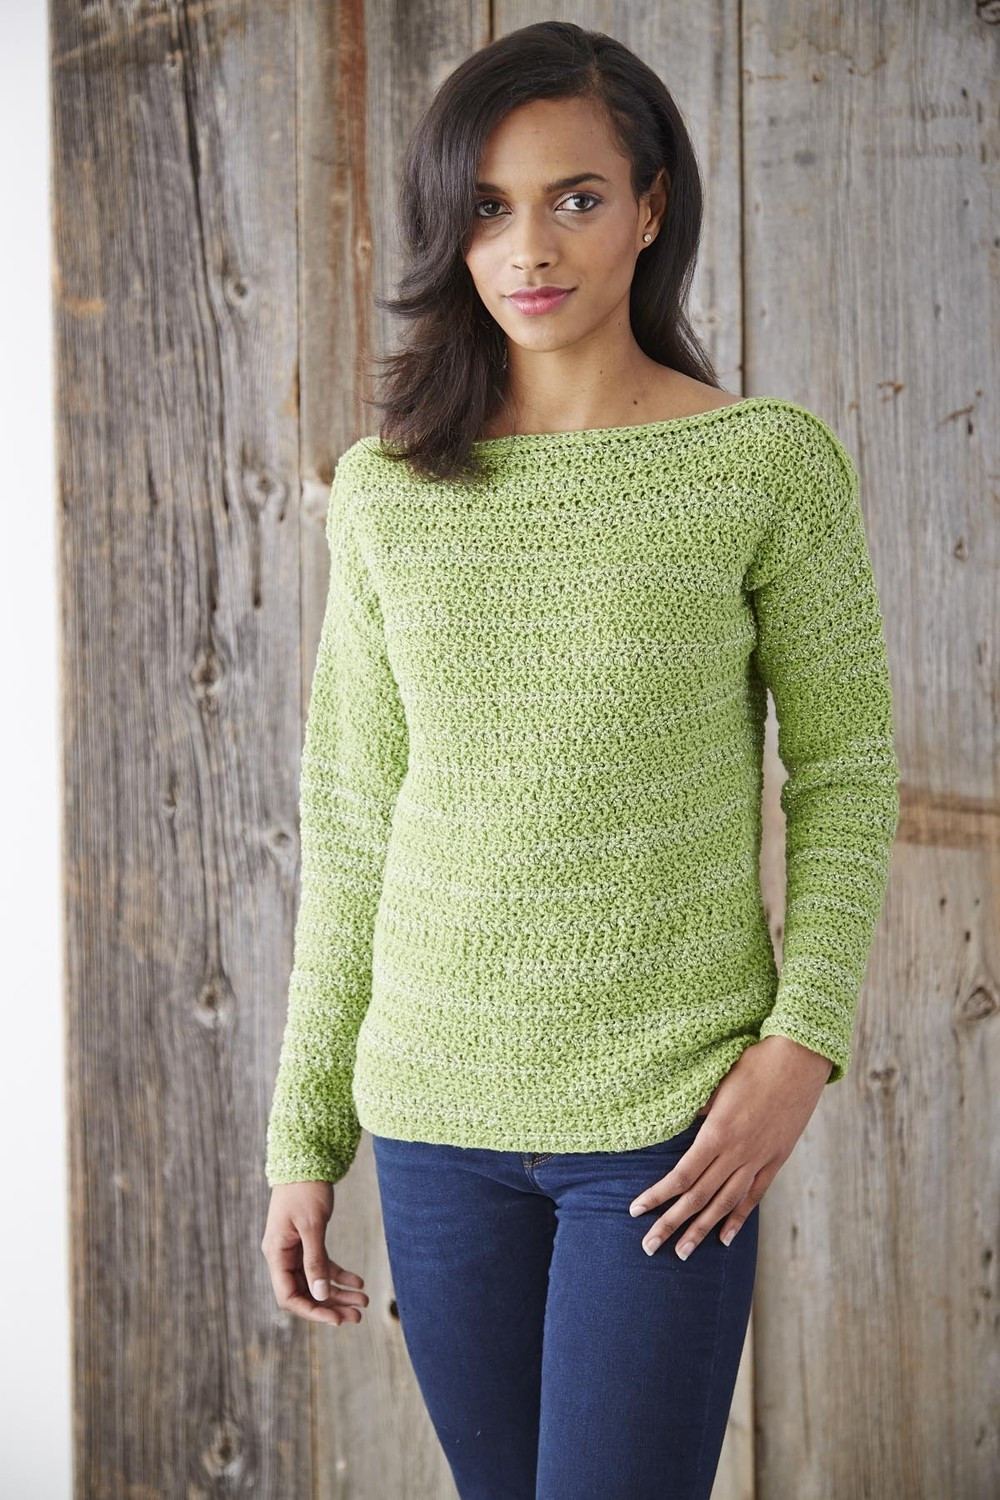 Baby Sweater Patterns Inspirational Boat Neck Pullover Sweater Of Beautiful 41 Images Baby Sweater Patterns